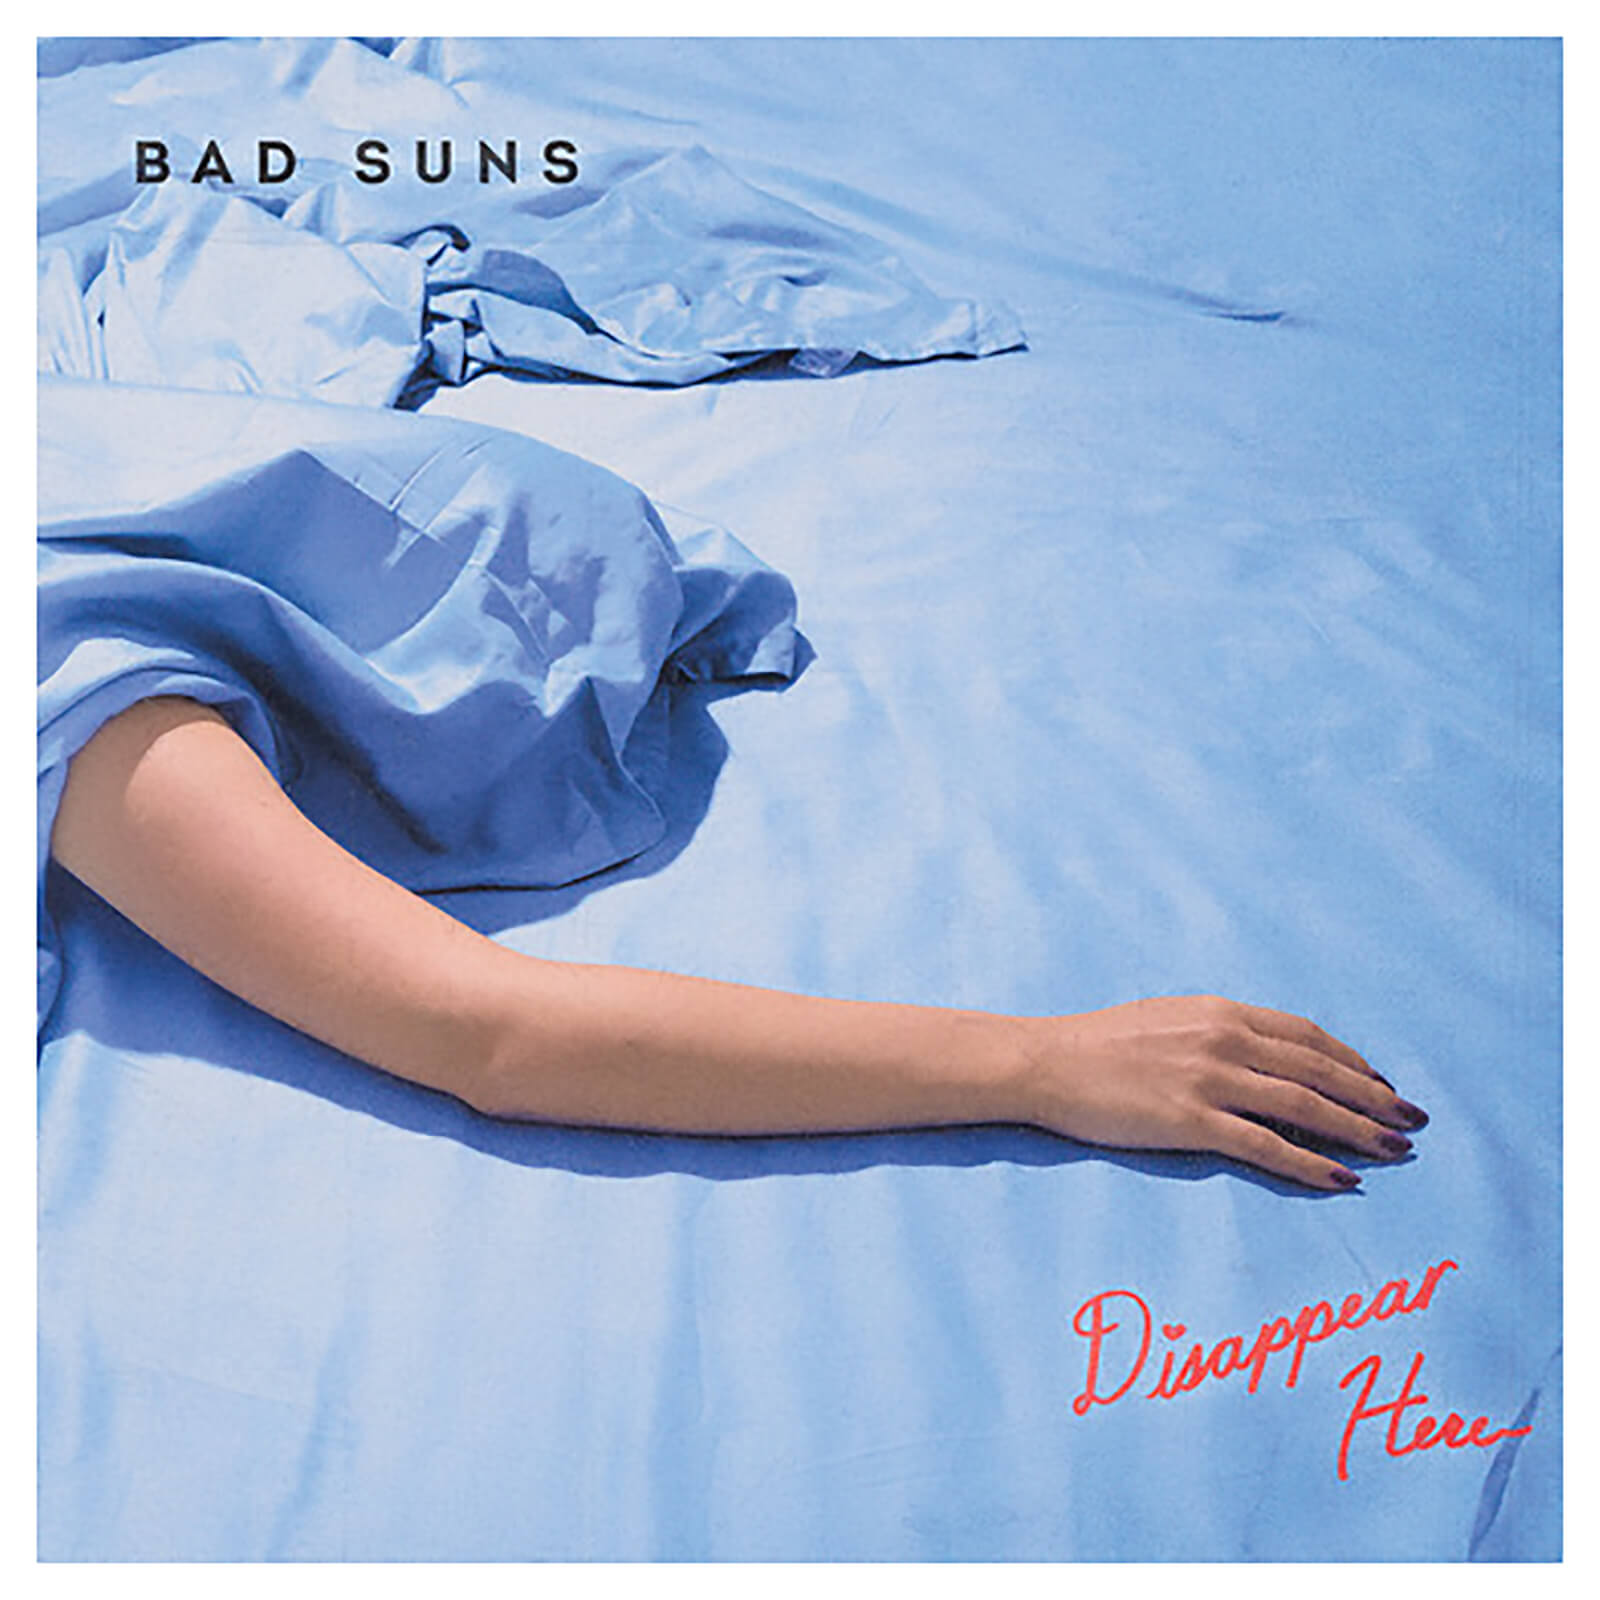 Bad Suns - Disappear Here - Vinyl